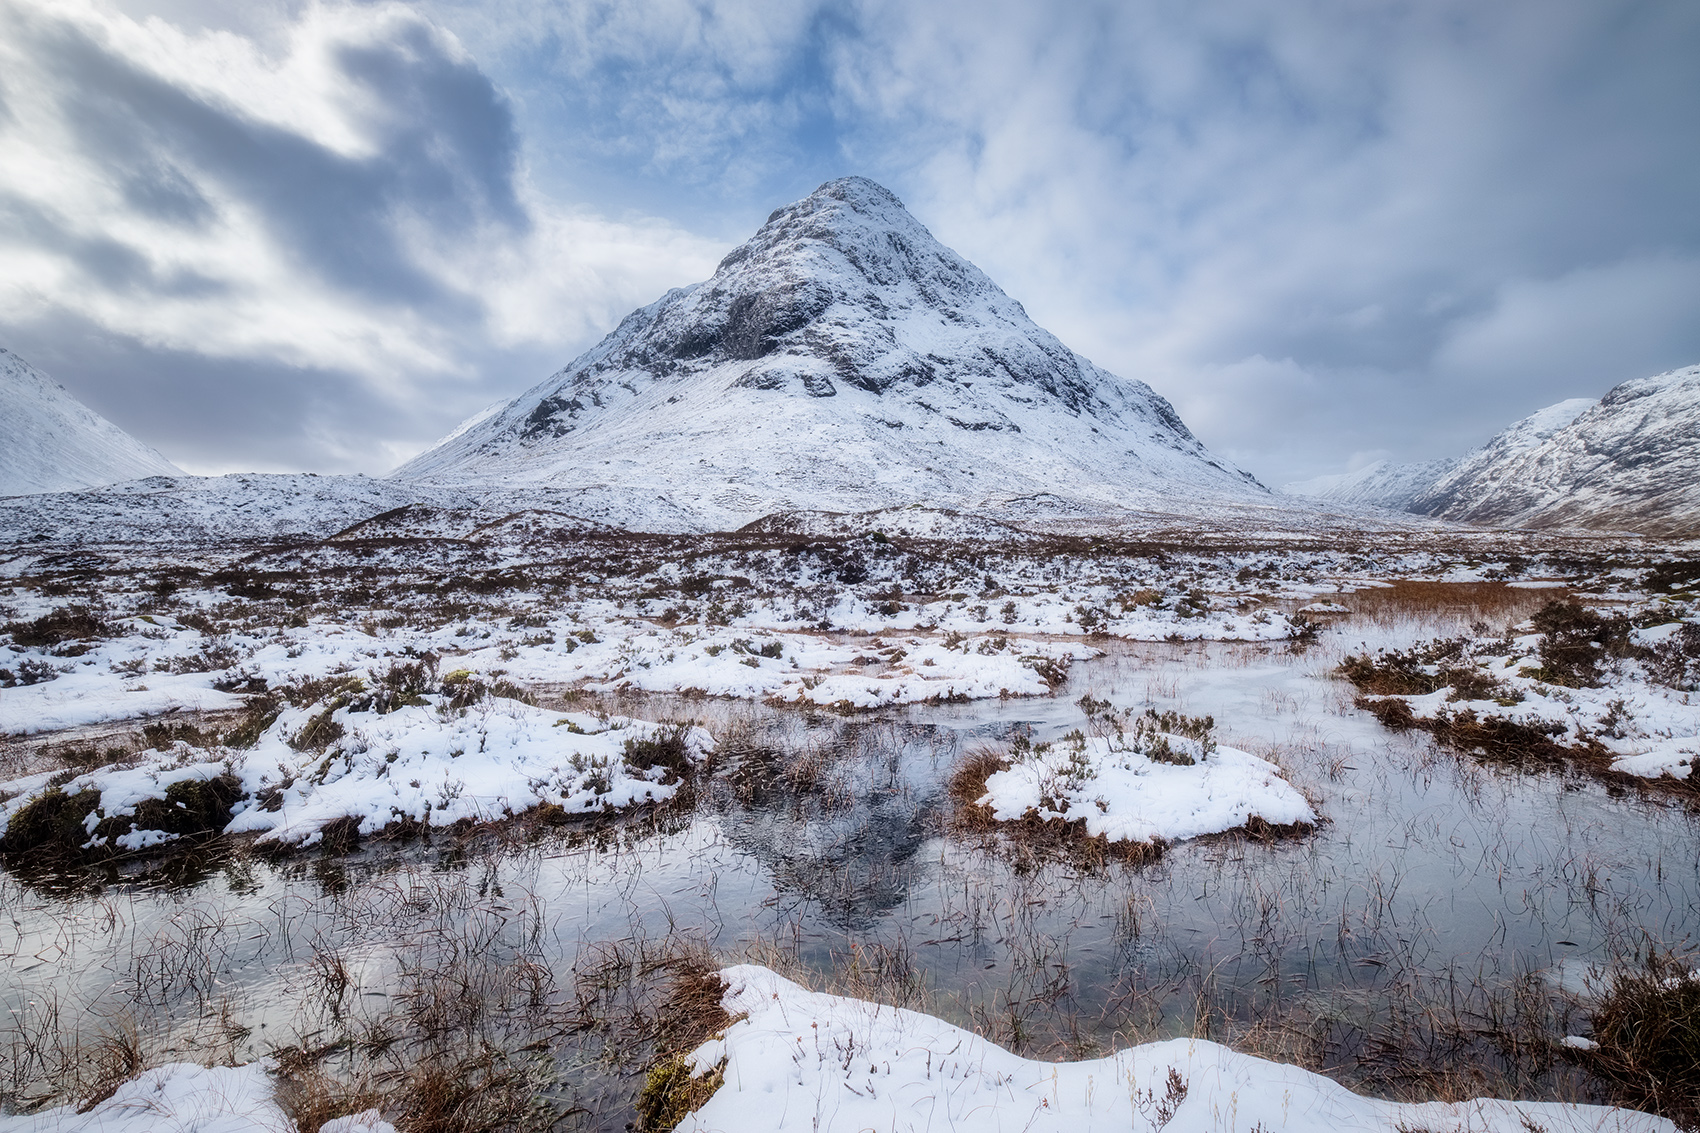 "Snow covered mountain on Rannoch Moor. Fuji X-T2 with Fuji 10-24mm lens. ISO200, F/11, 1/420""."